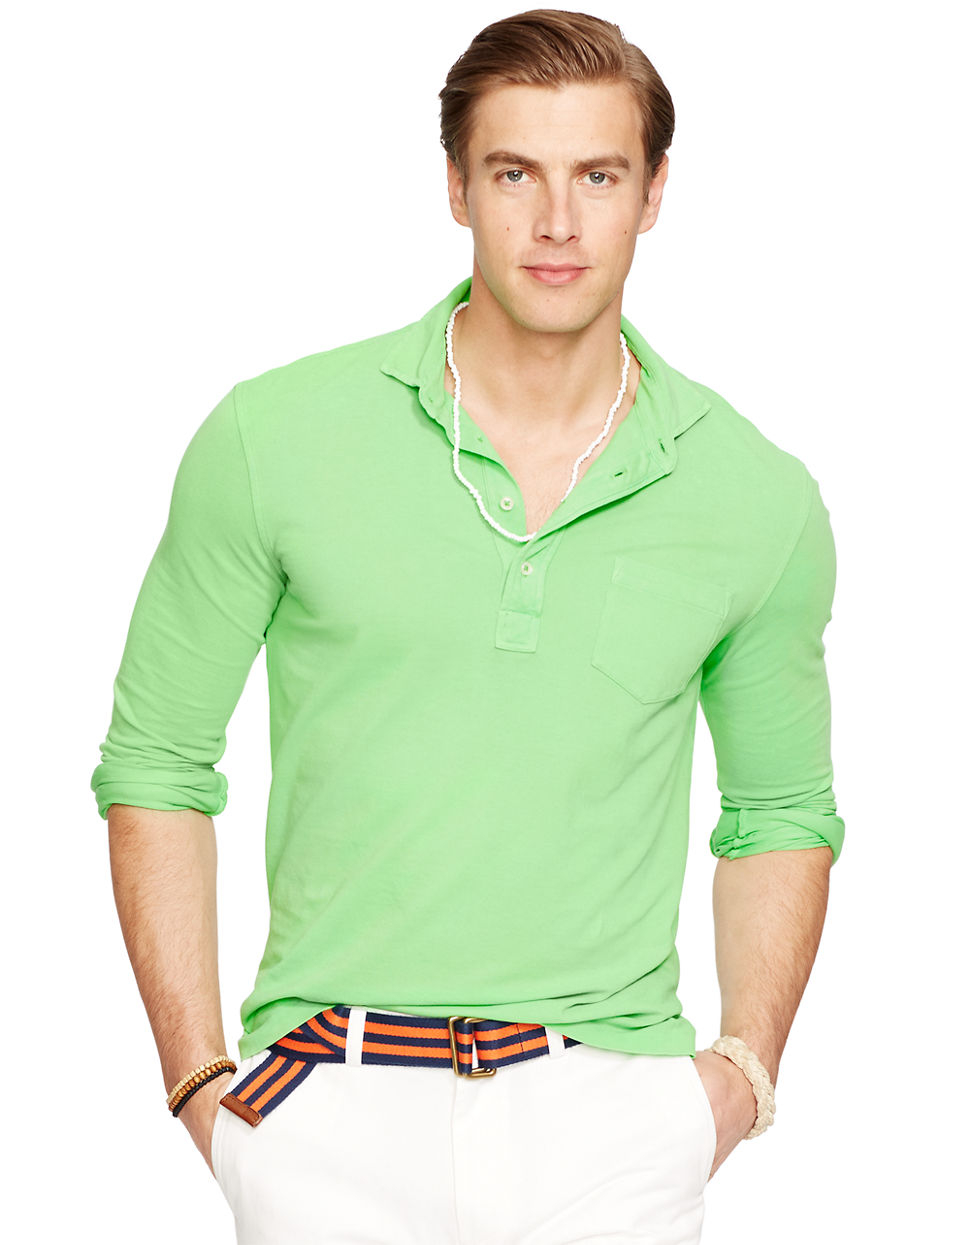 Polo ralph lauren neon featherweight mesh estate shirt in for Neon green shirts for men